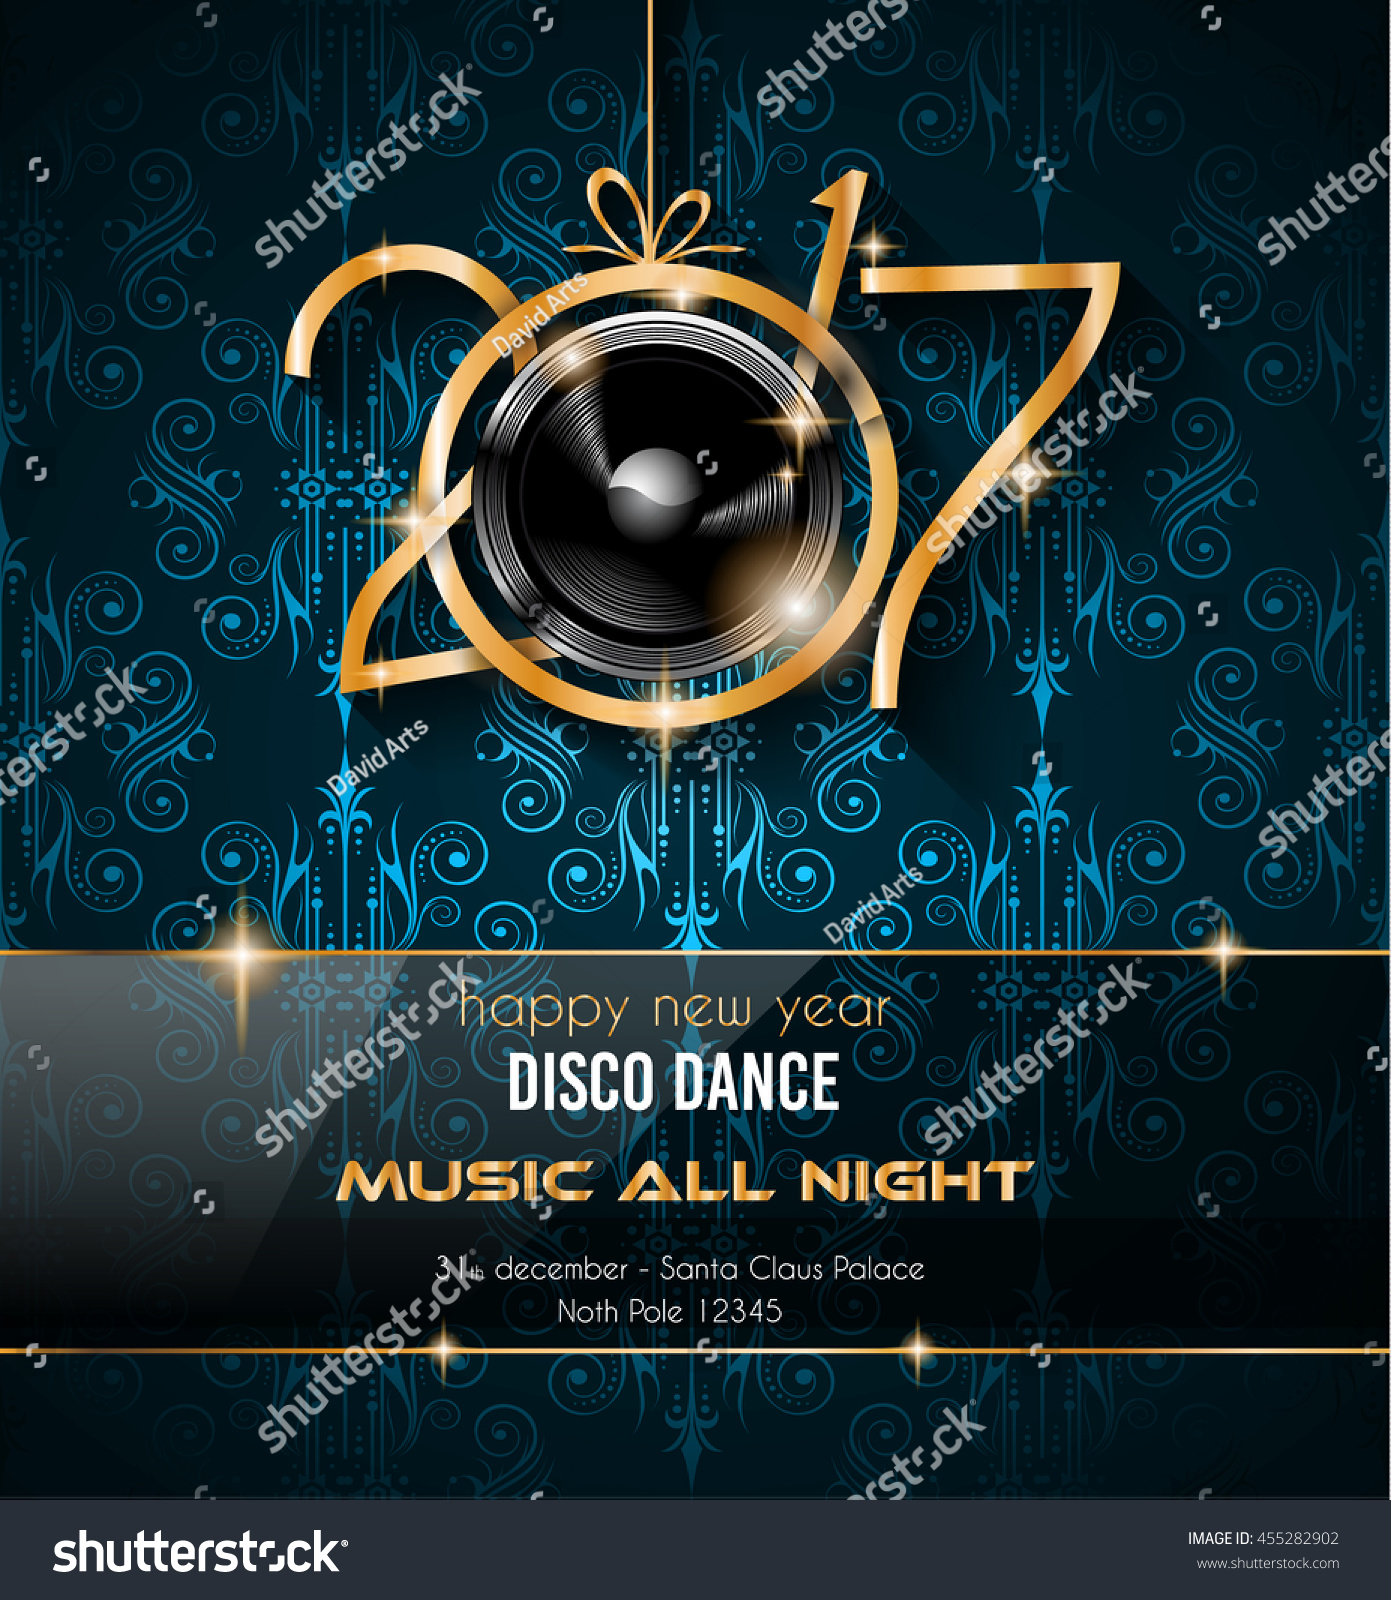 Club Disco Flyer Template Music Elements Stock Illustration ...